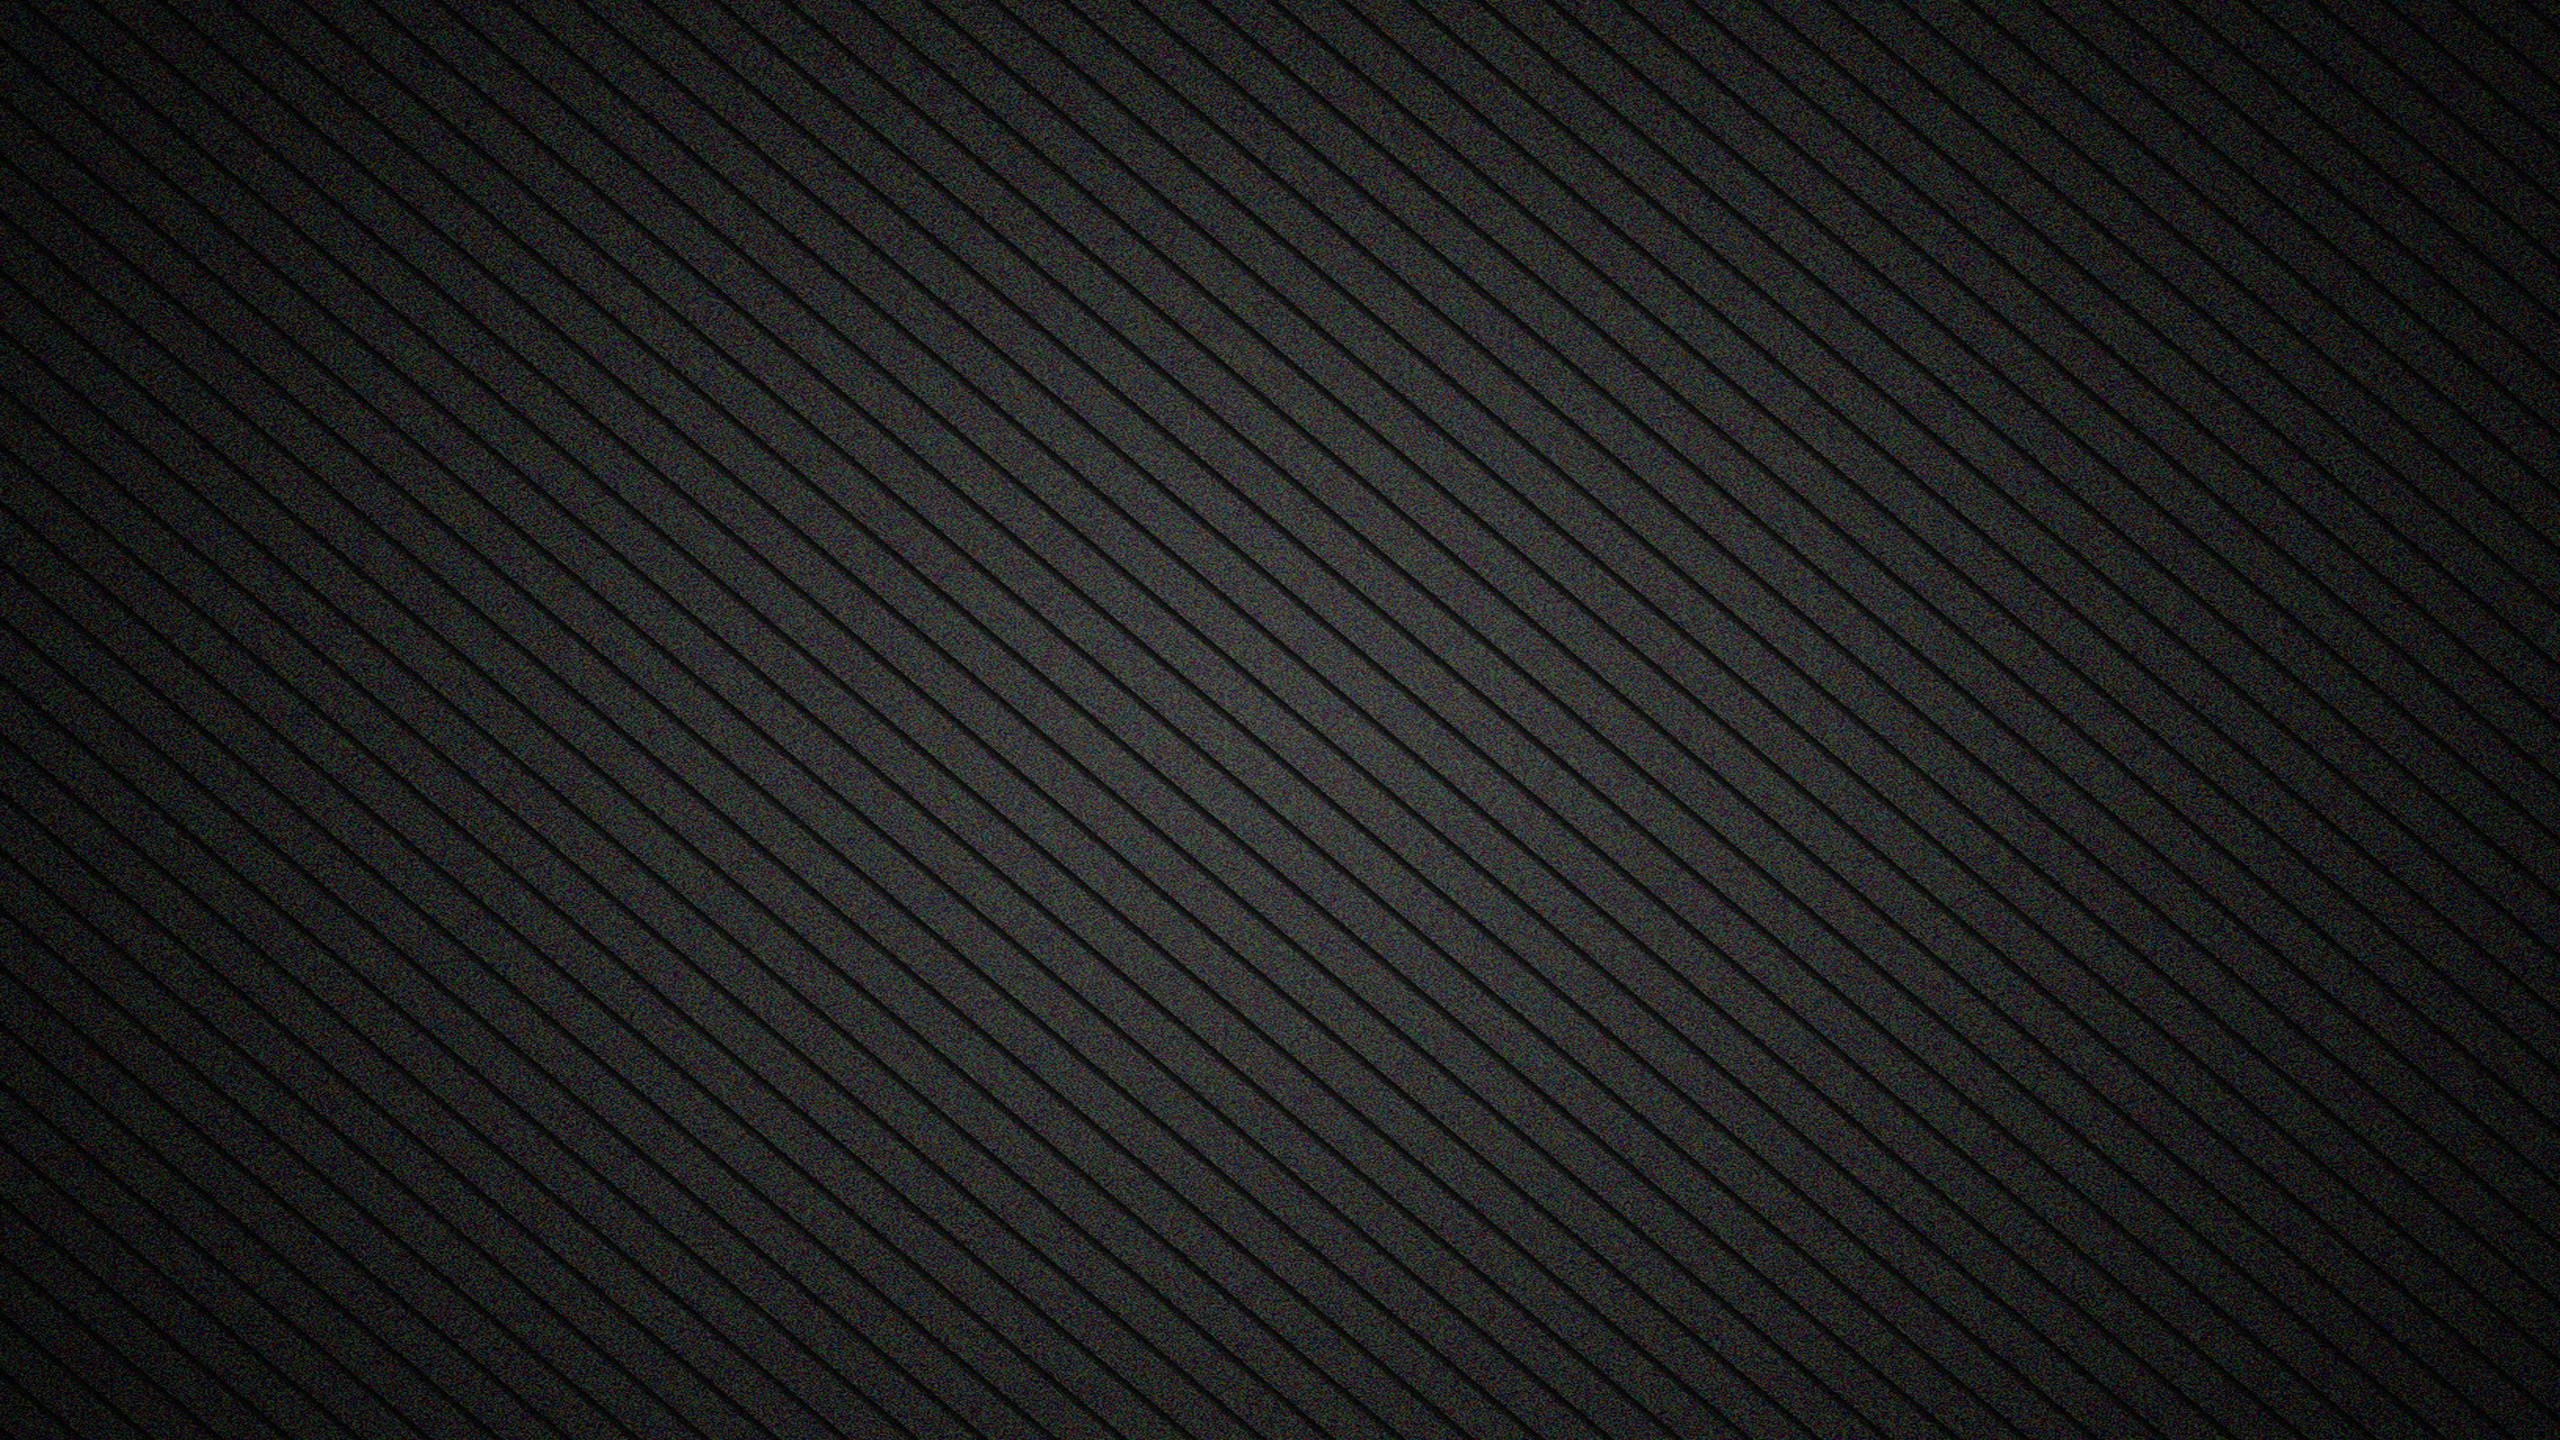 2560 x 1440 wallpapers 81 images